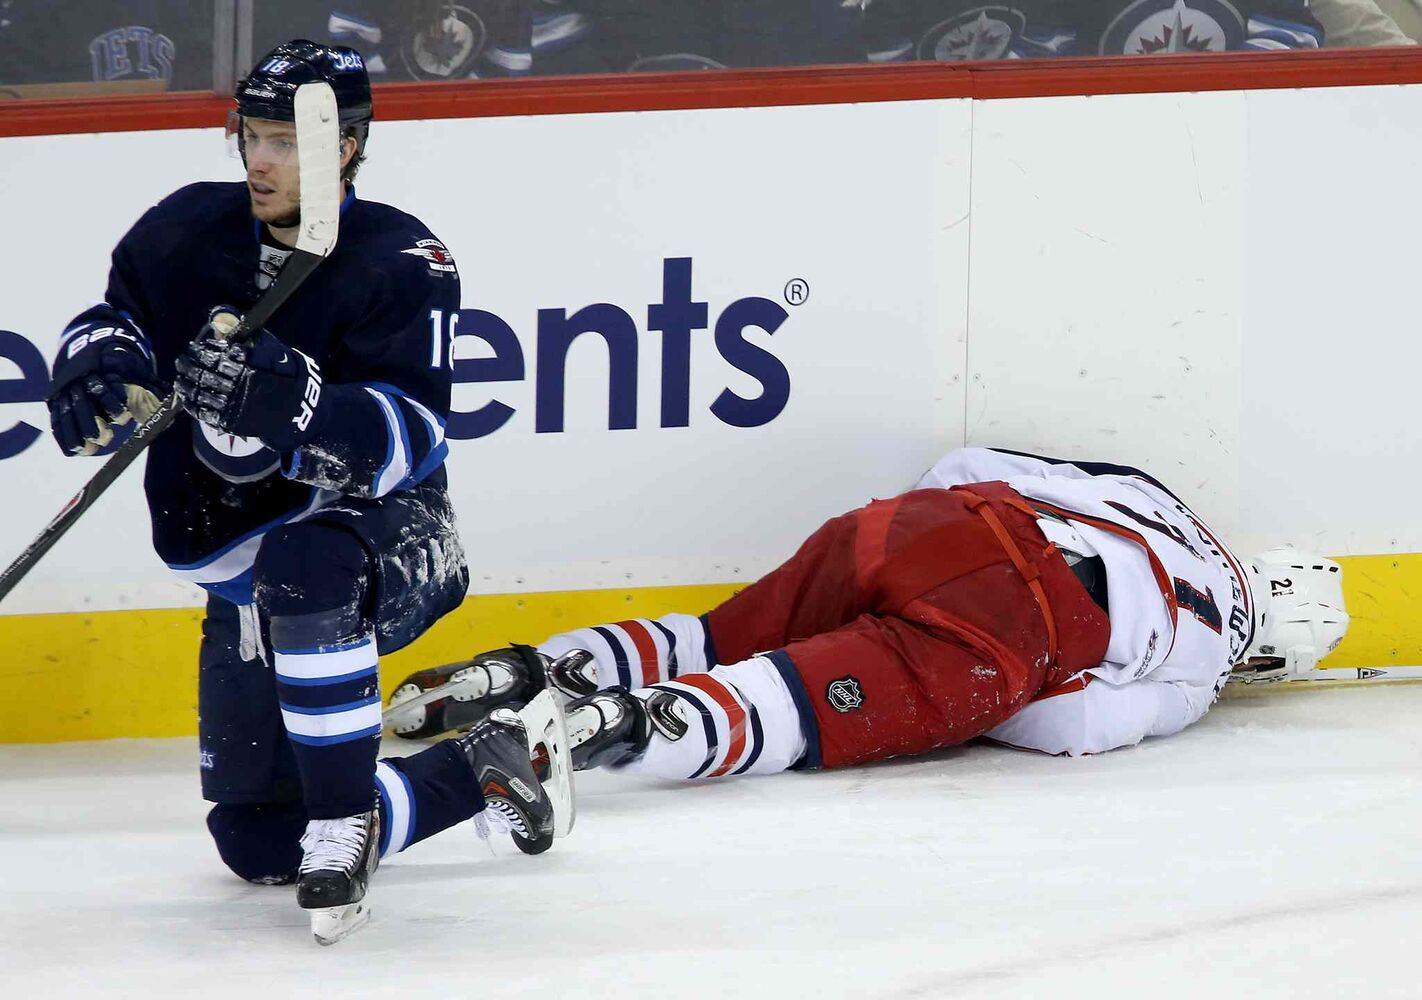 Winnipeg Jets' Bryan Little (18) and Columbus Blue Jackets' James Wisniewski (21) collided during the first period of Saturday's game. (Trevor Hagan / Winnipeg Free Press)